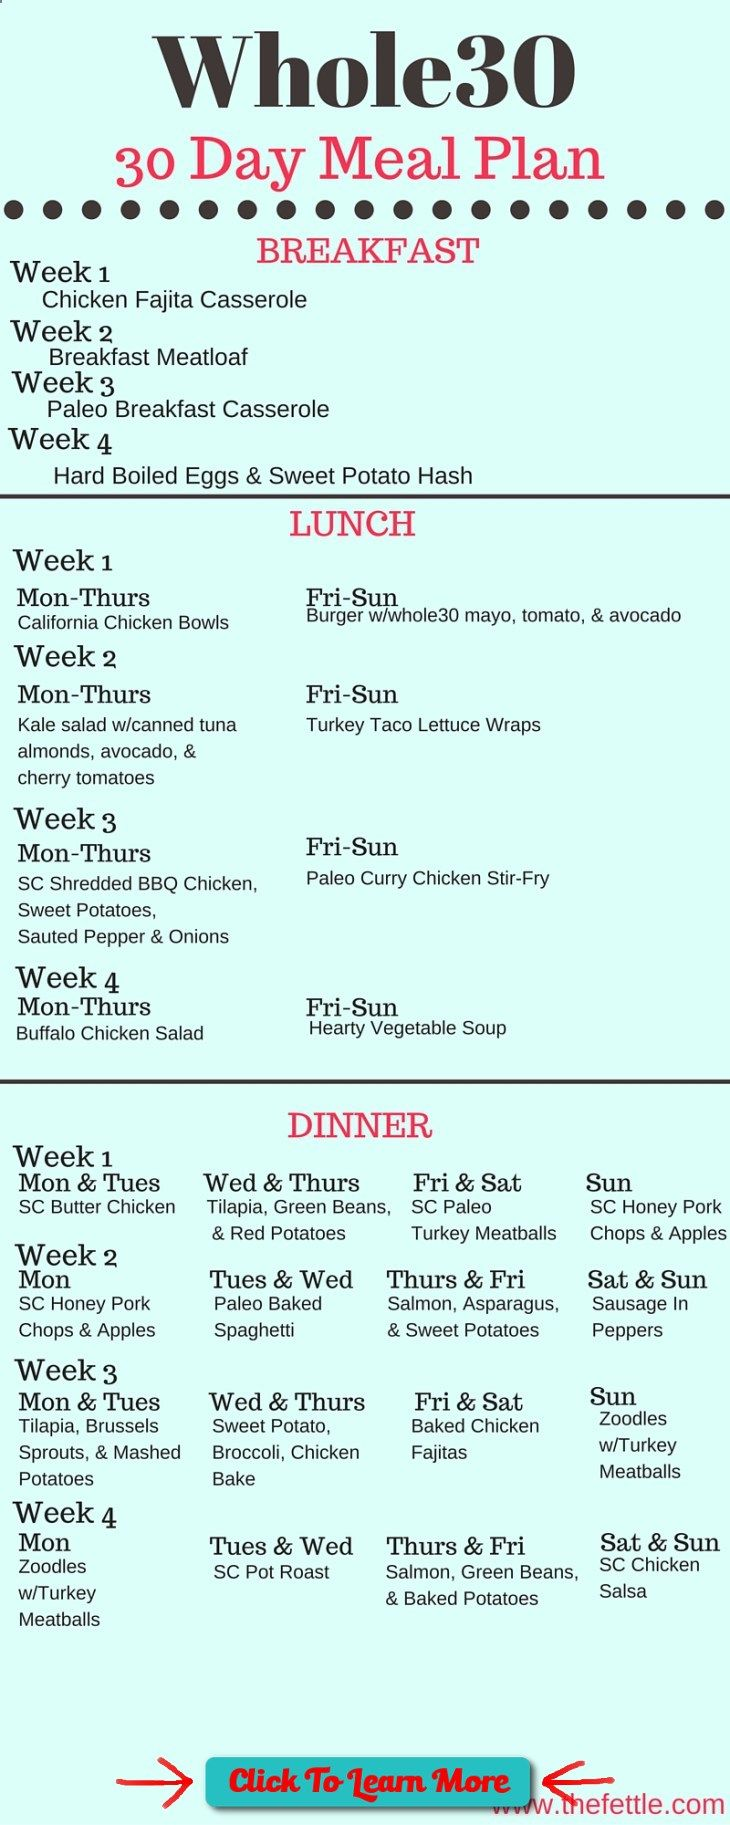 #FastestWayToLoseWeight by EATING, Click to learn more, The Whole30 Meal Plan 30 Days Of Meals the fettle , #HealthyRecipes, #FitnessRecipes, #BurnFatRecipes, #WeightLossRecipes, #WeightLossDiets